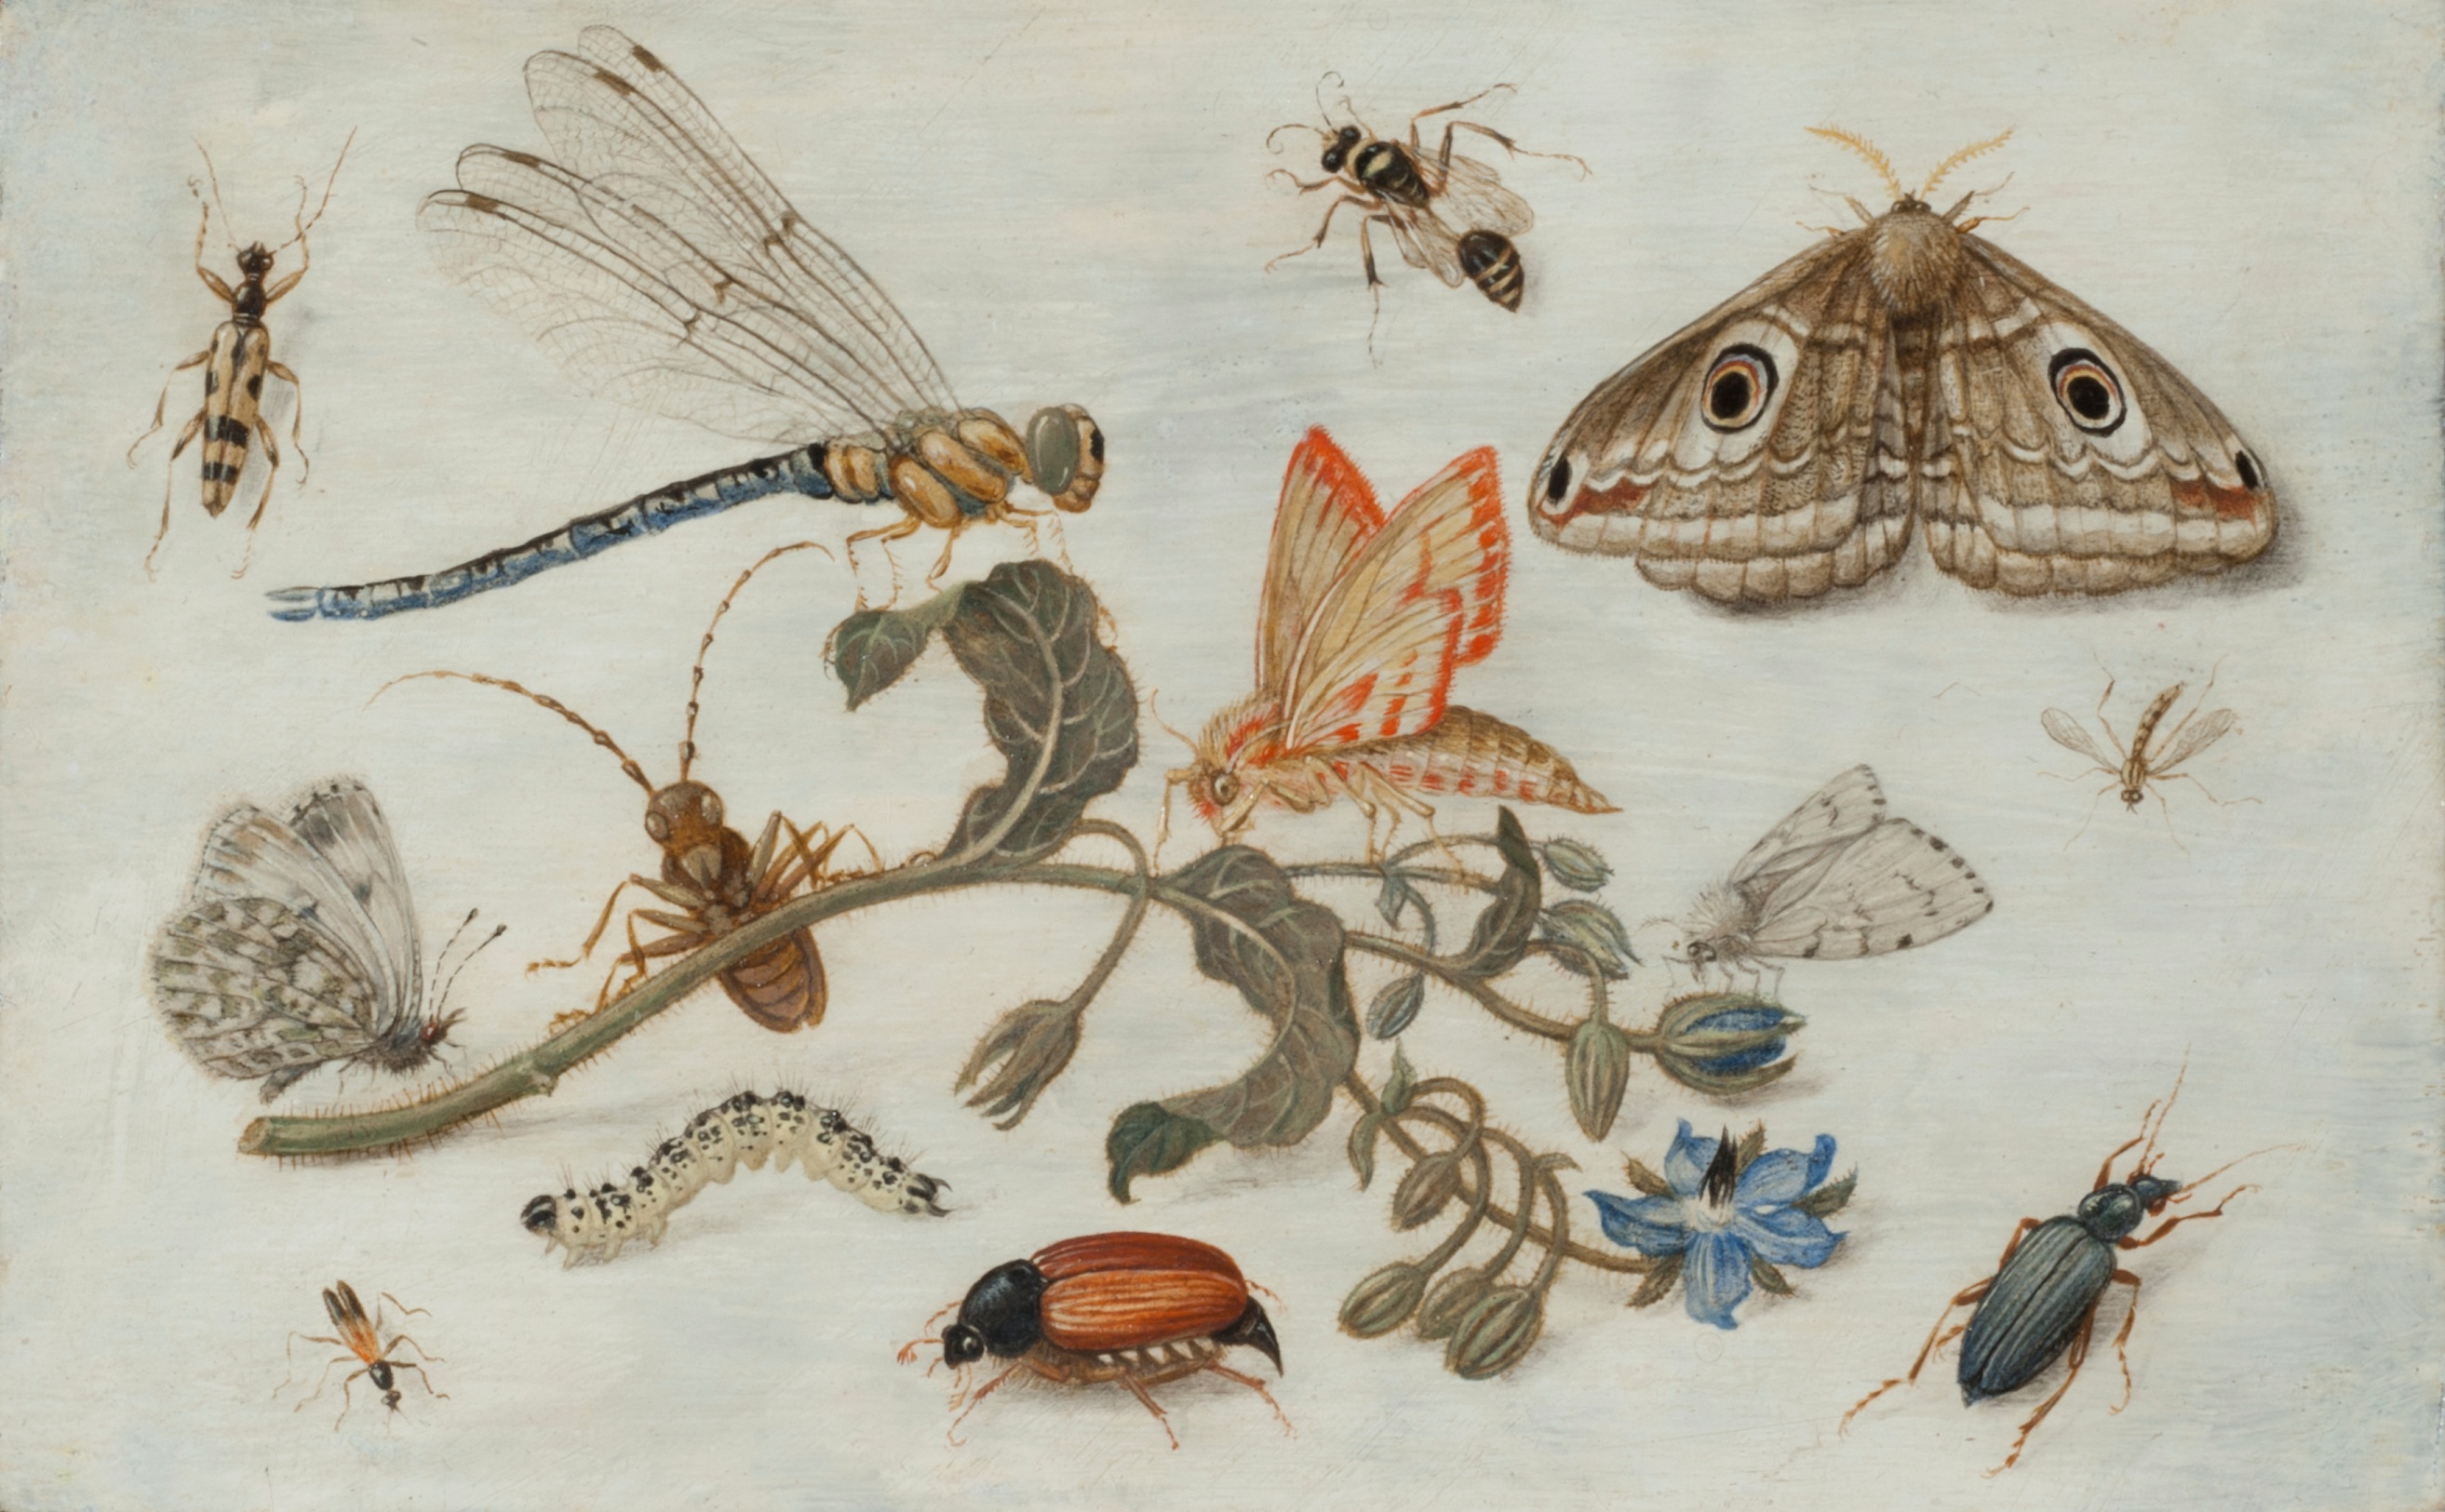 Jan van Kessel the Elder - Study of Insect with a Flower of Borago Officinalis